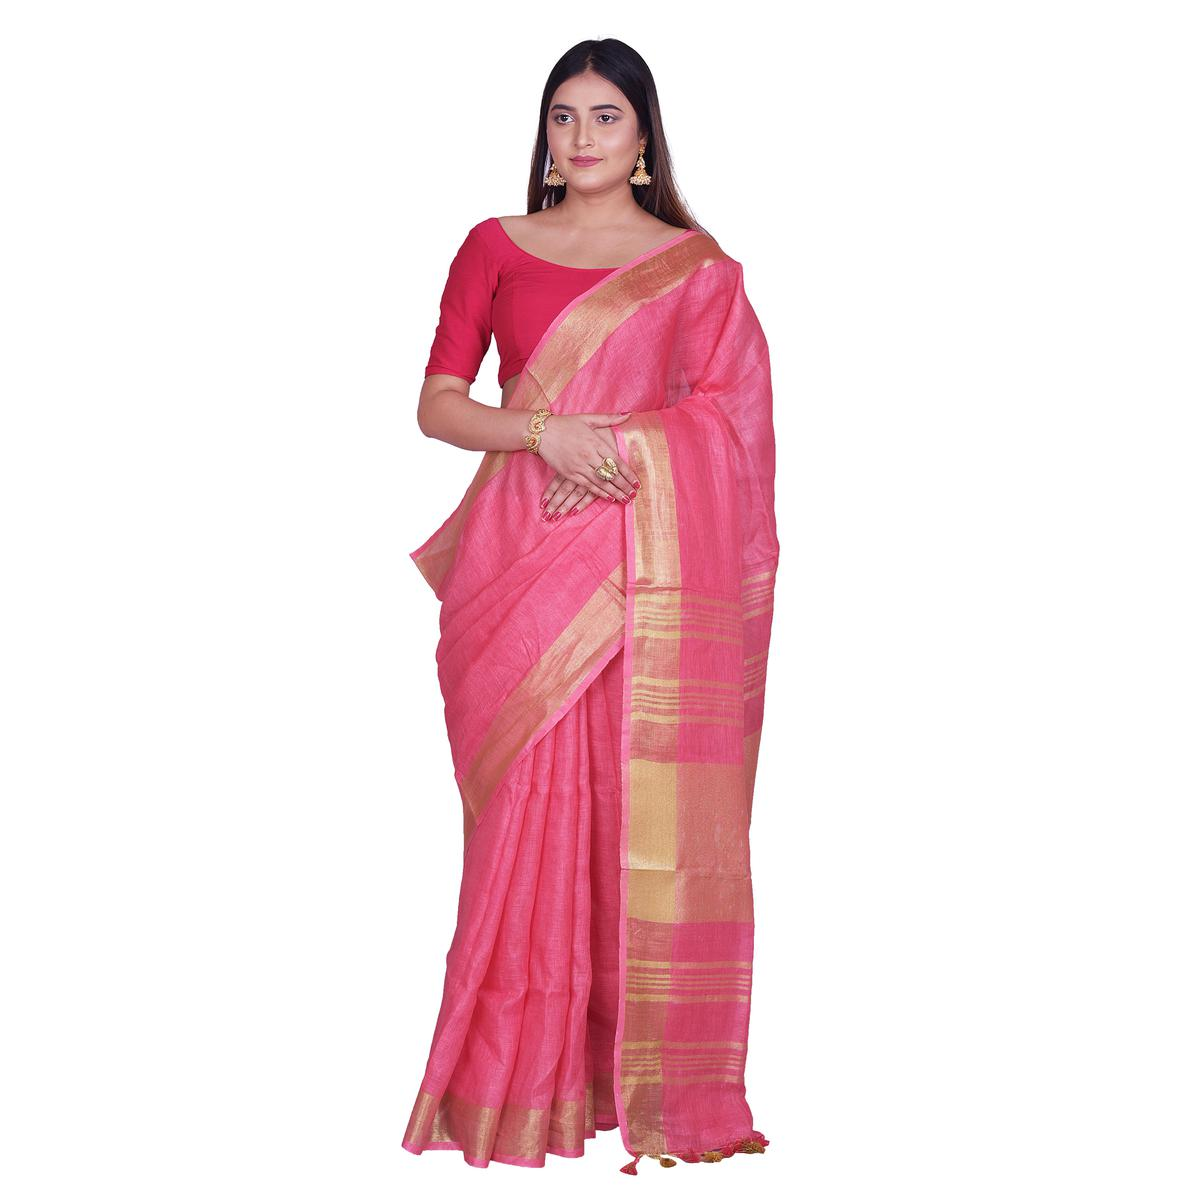 Kihums - Pink Hand Woven Linen Saree With Zari Border And Blouse Piece